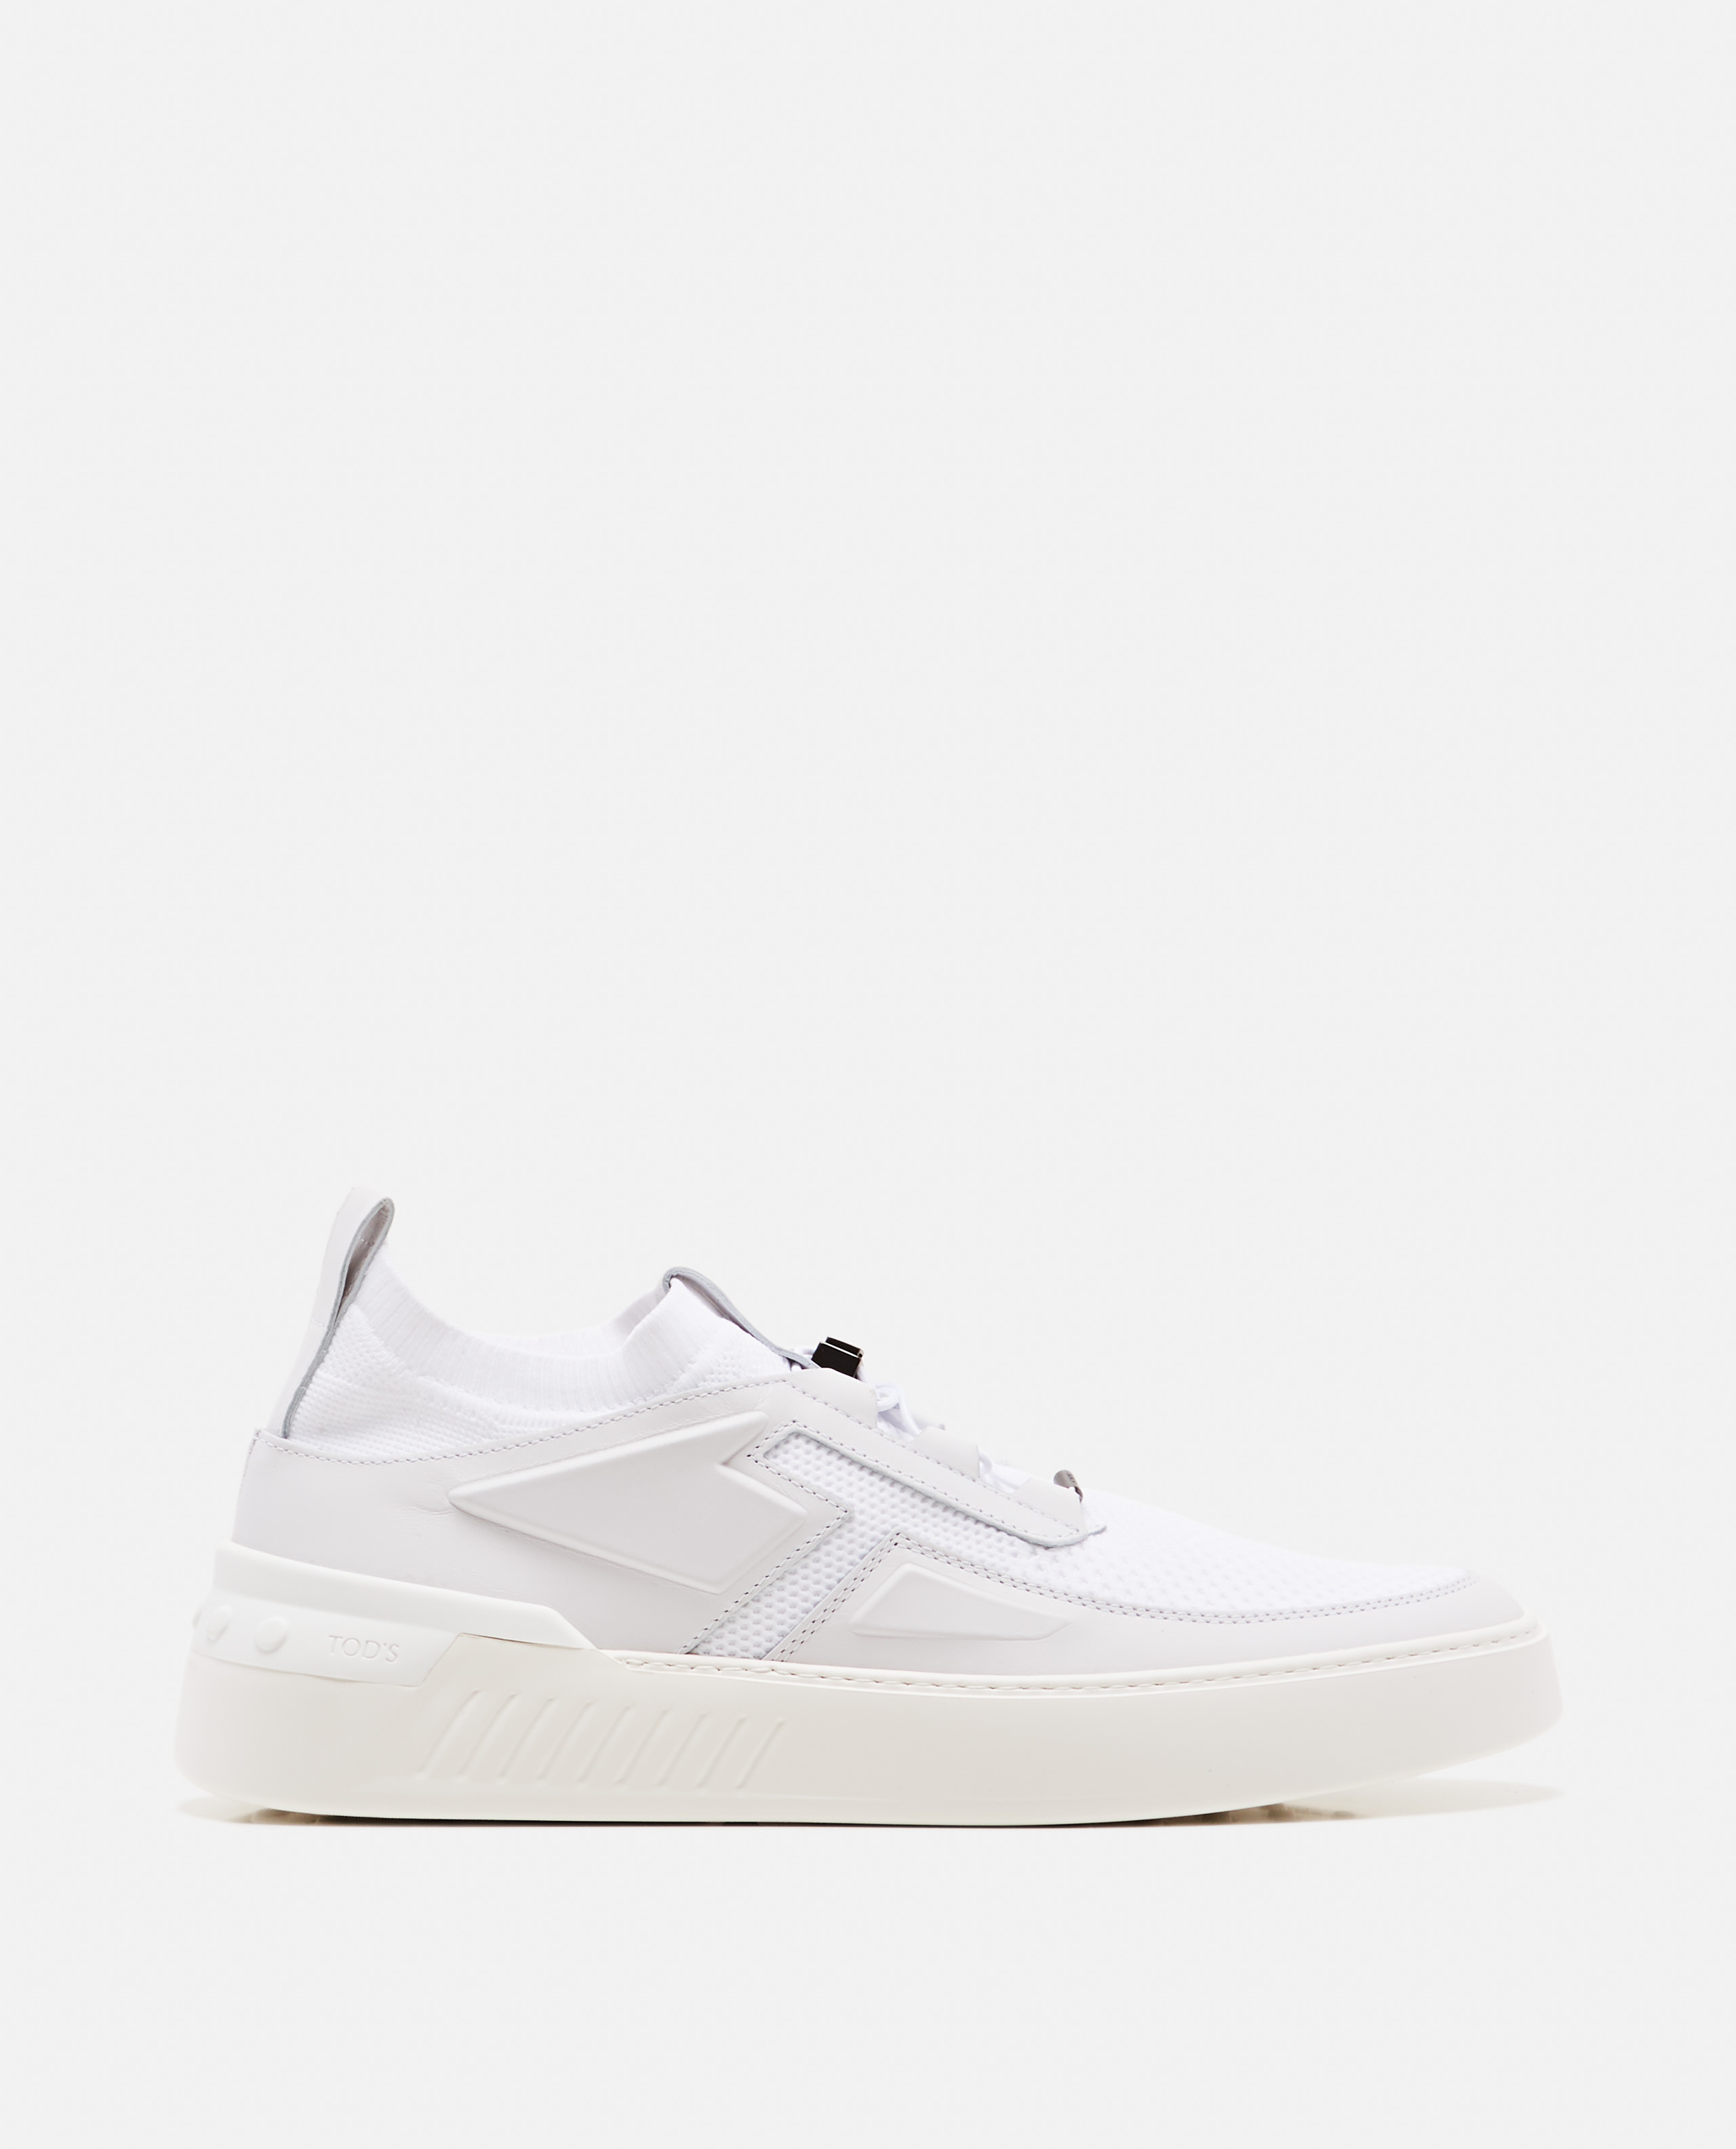 Low white leather sneakers